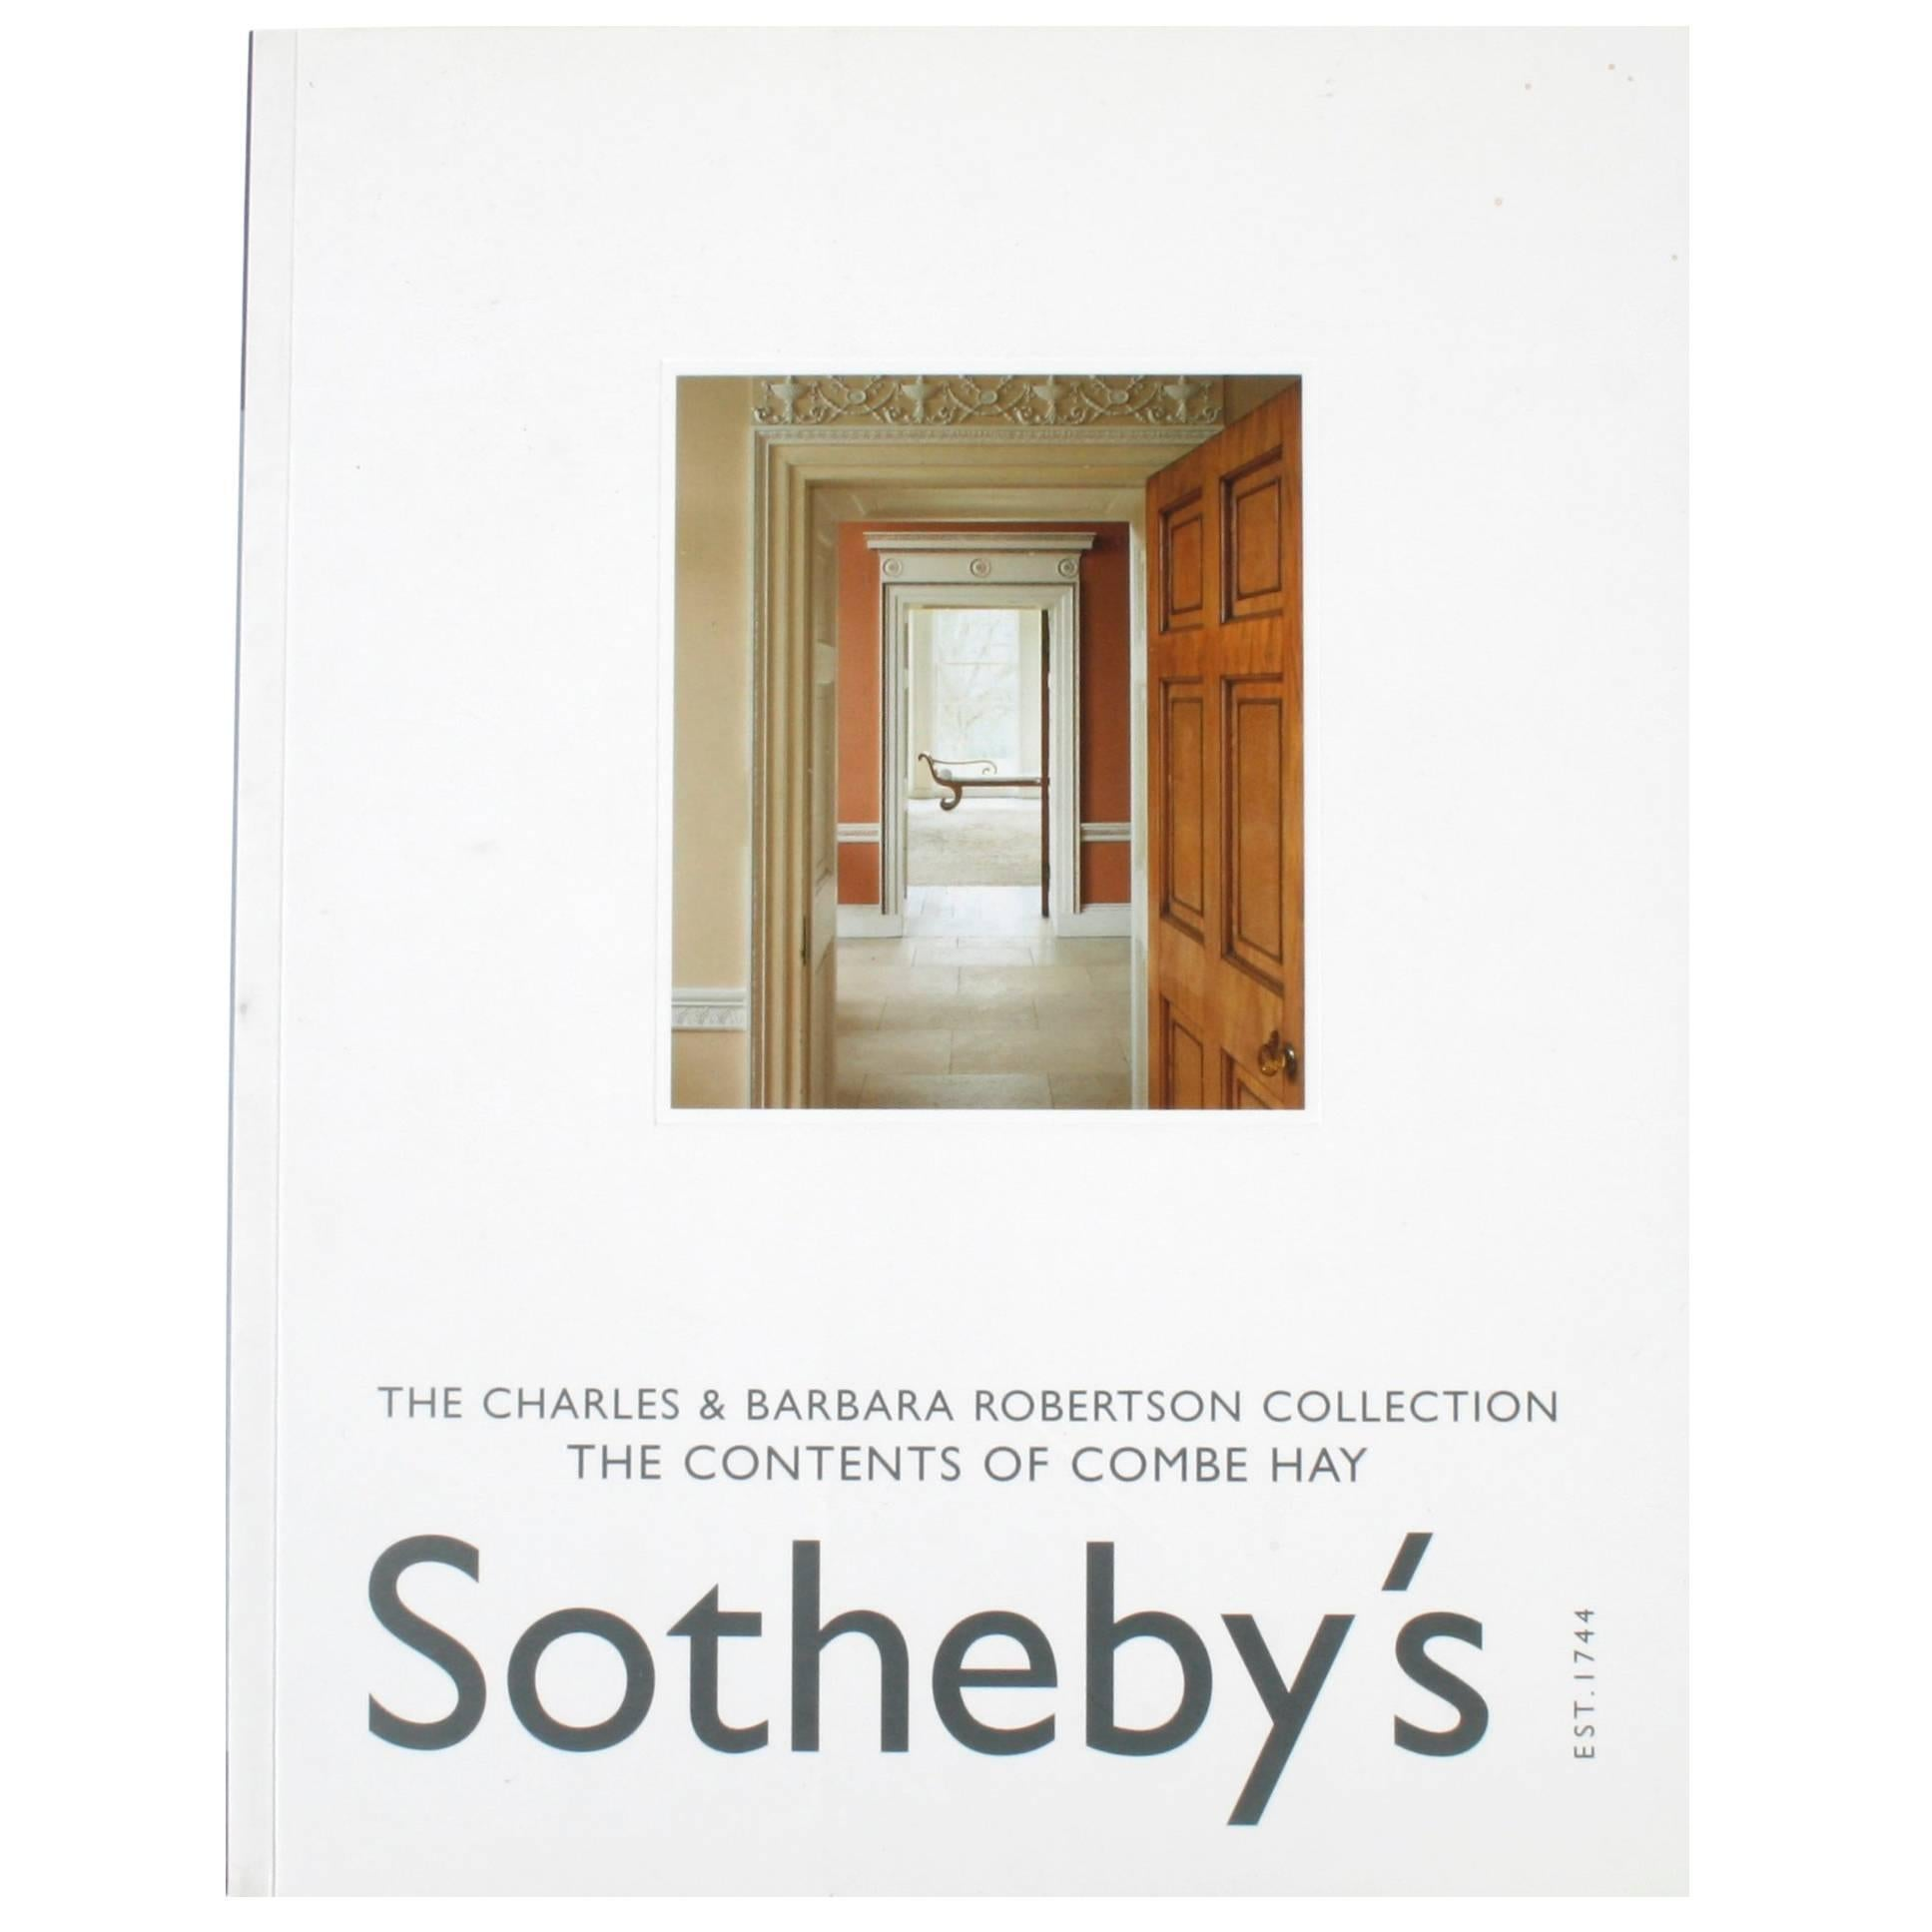 Sotheby's; Charles & Barbara Robertson Collection: Contents of Combe Hay, Vol II